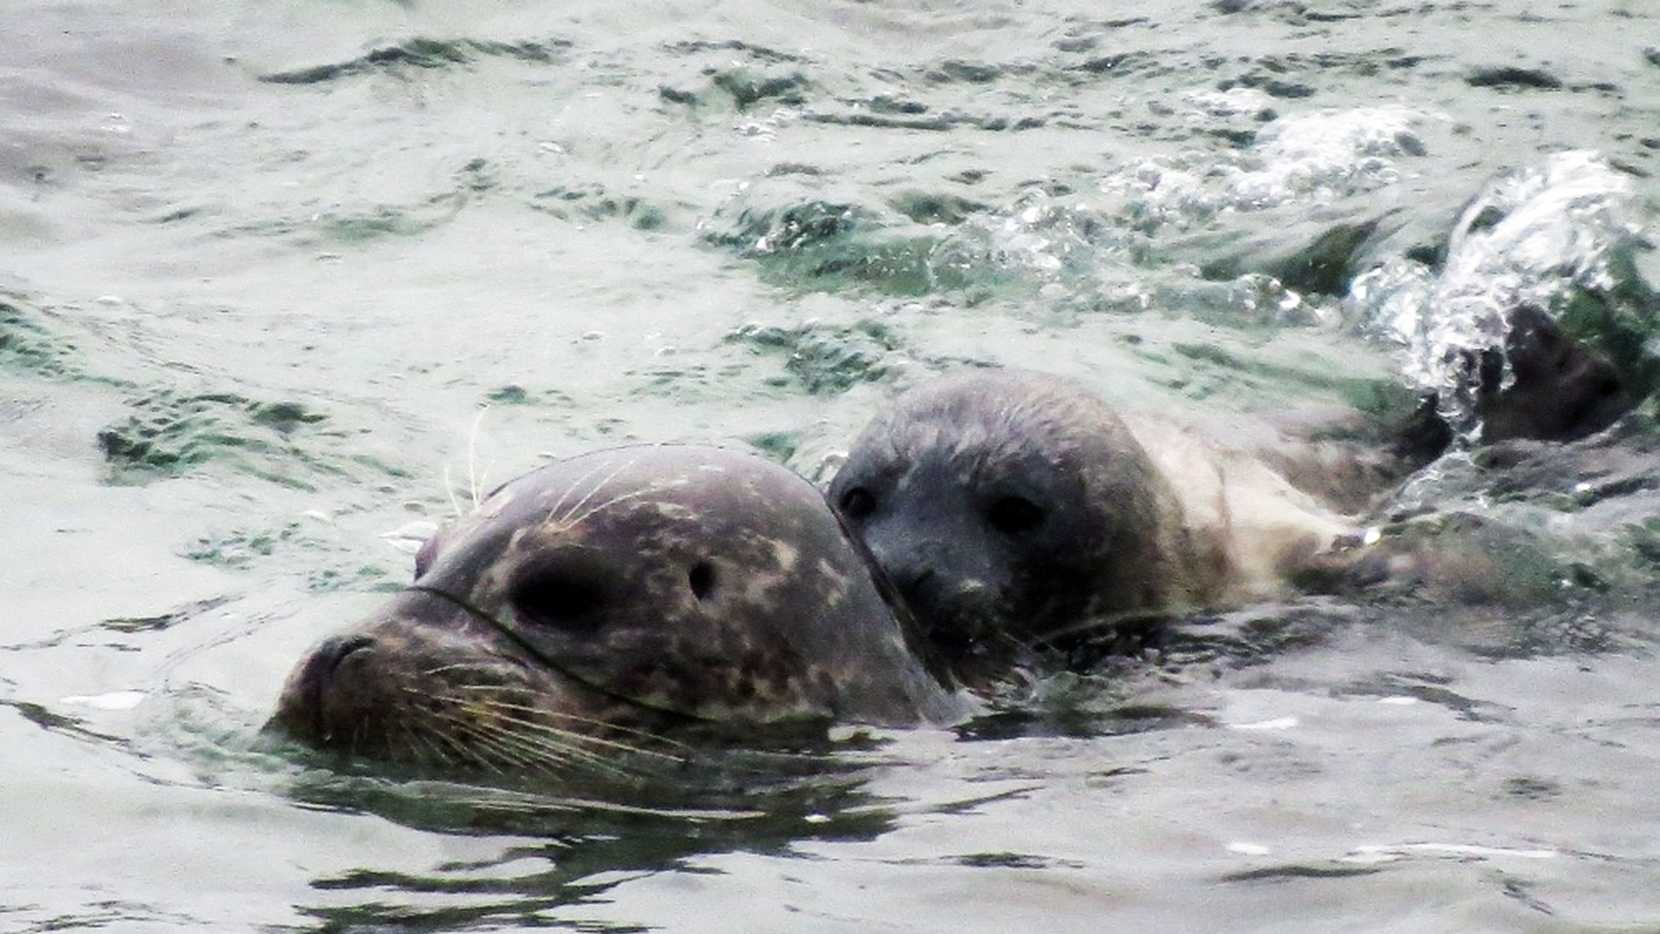 Newborn pup No. 1 gets a swimming lesson from its mother on March 25.